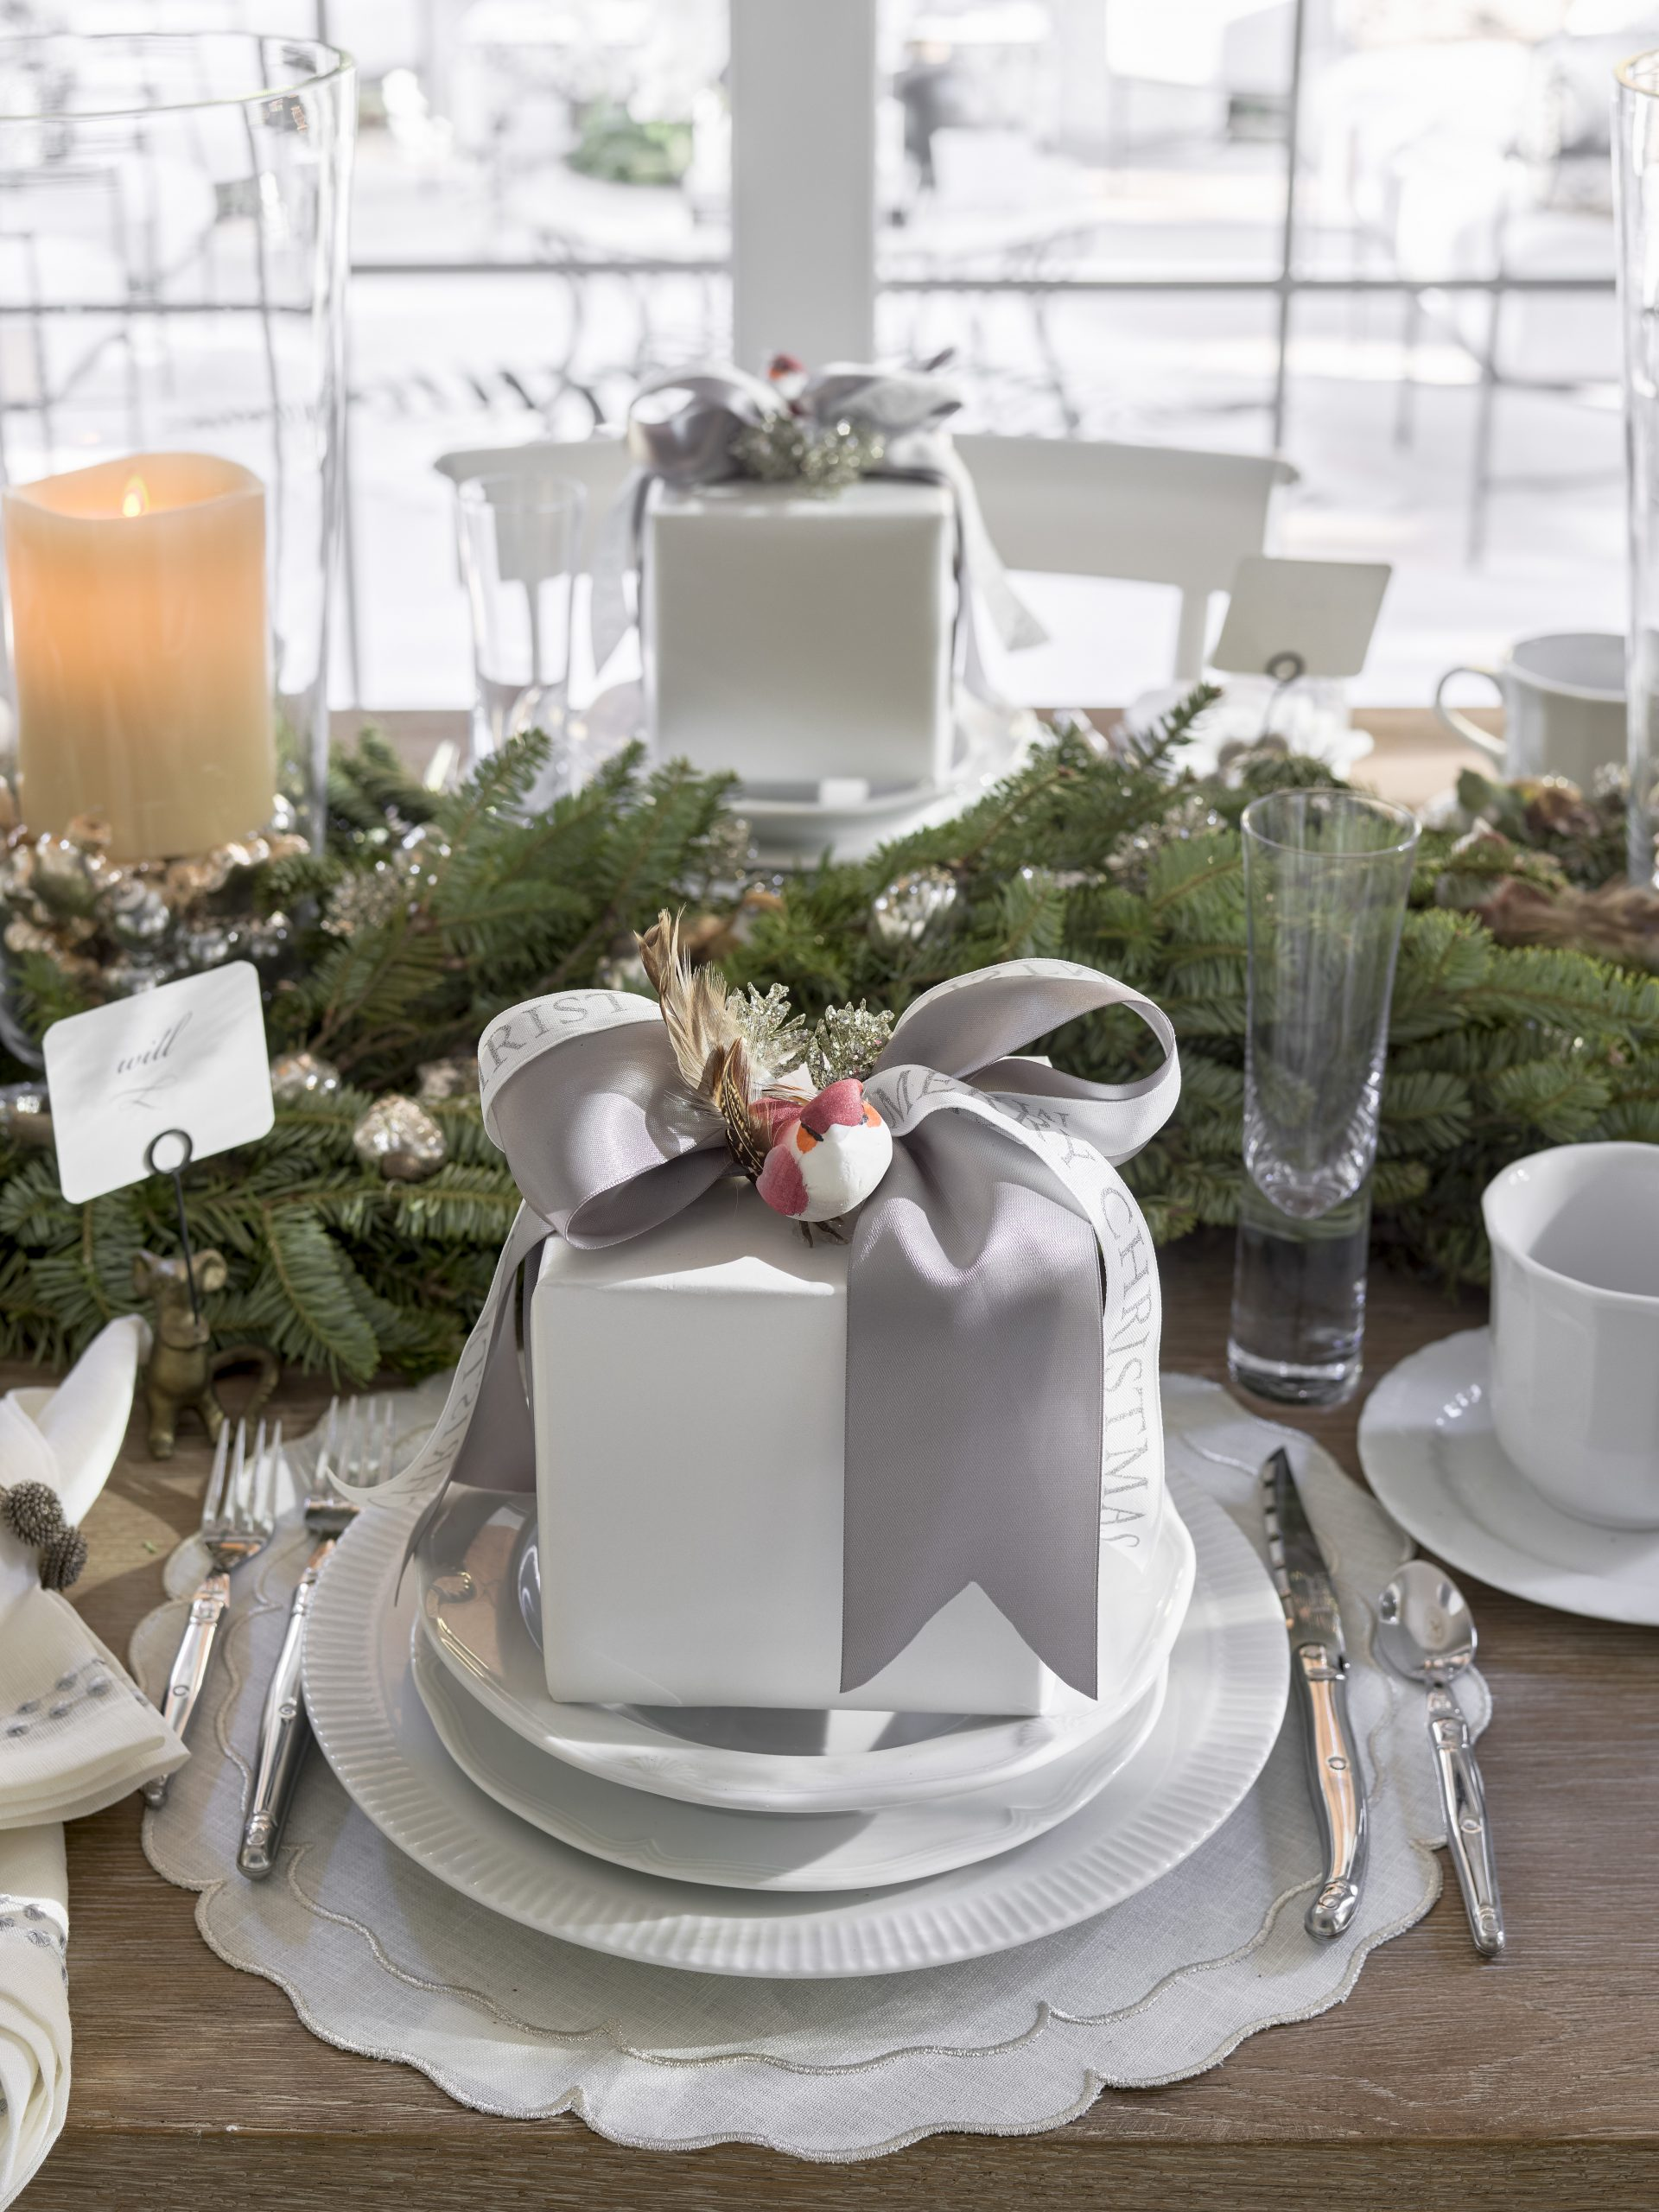 Feel Good Friday: Festive Tablescapes For The Holiday